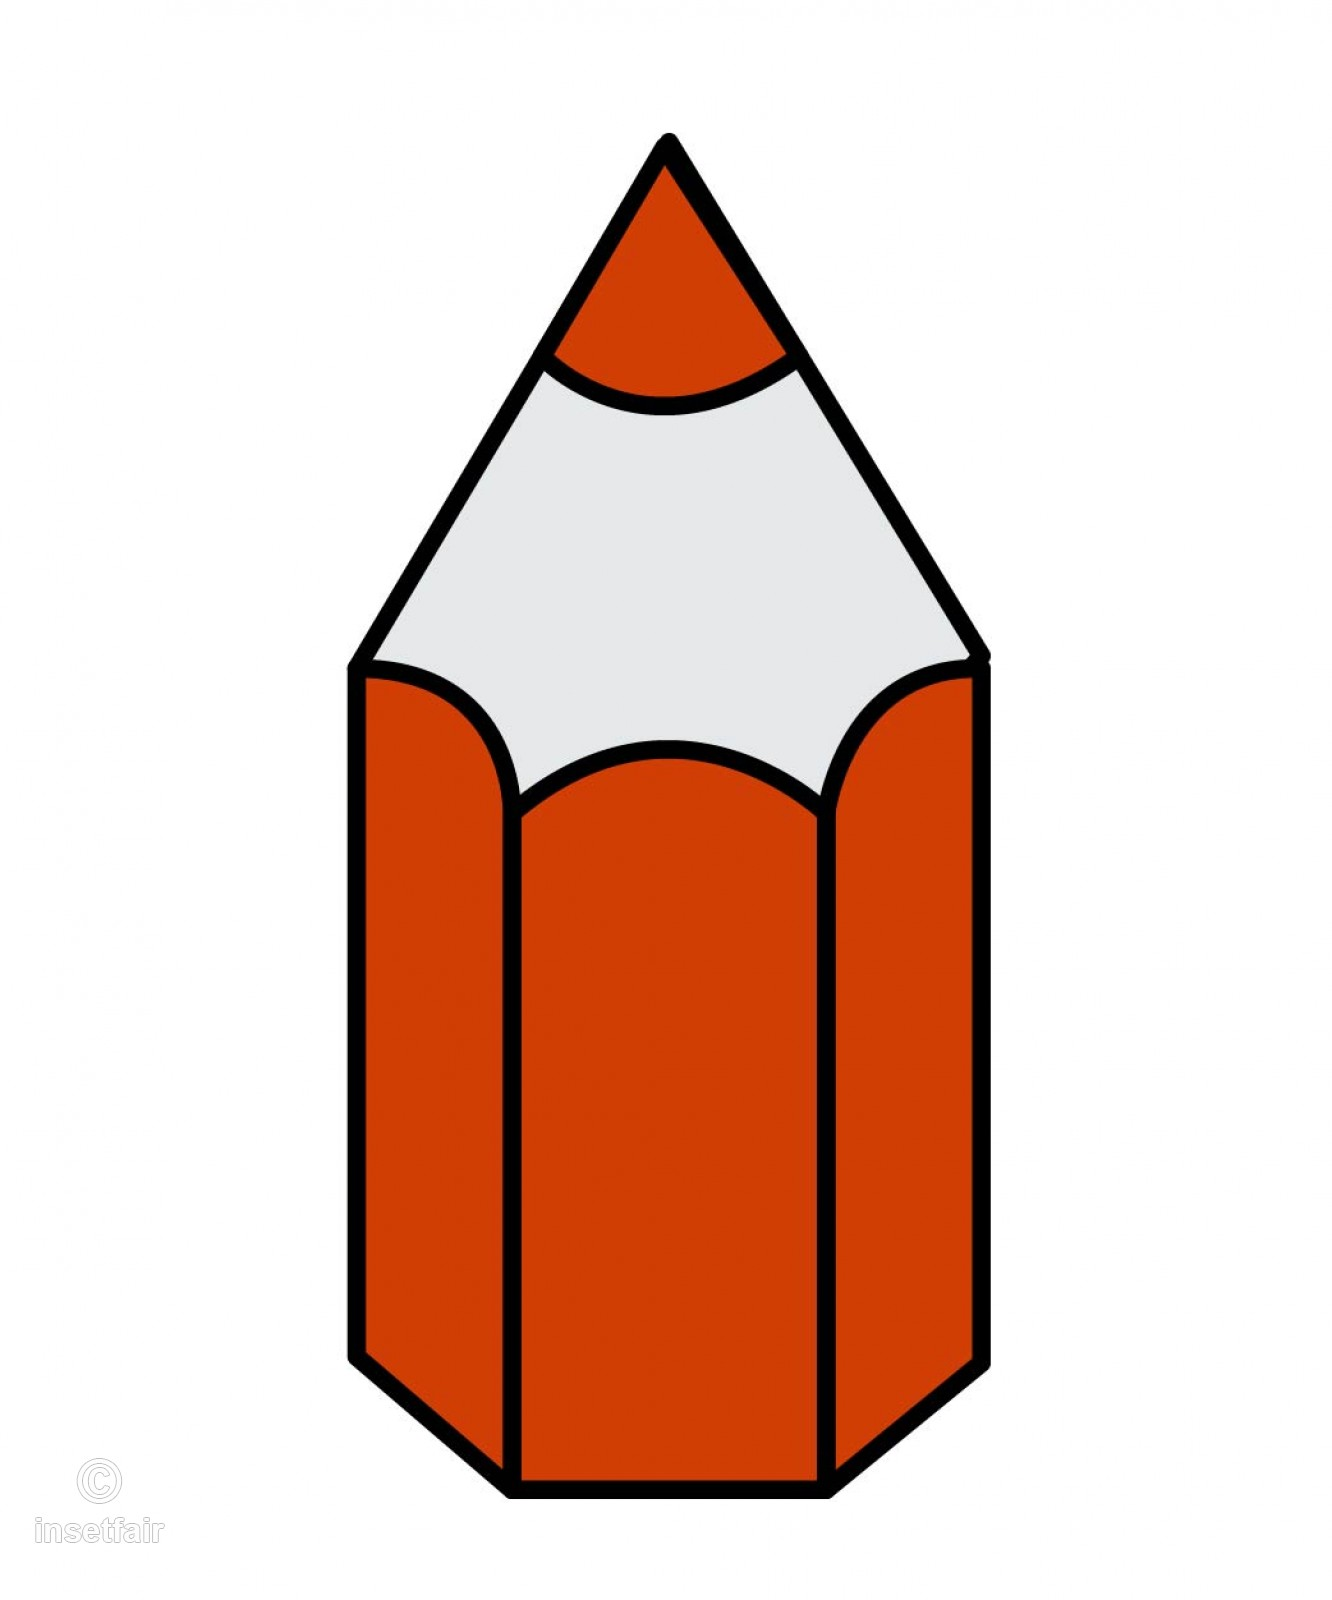 Pencil icon in red png file.